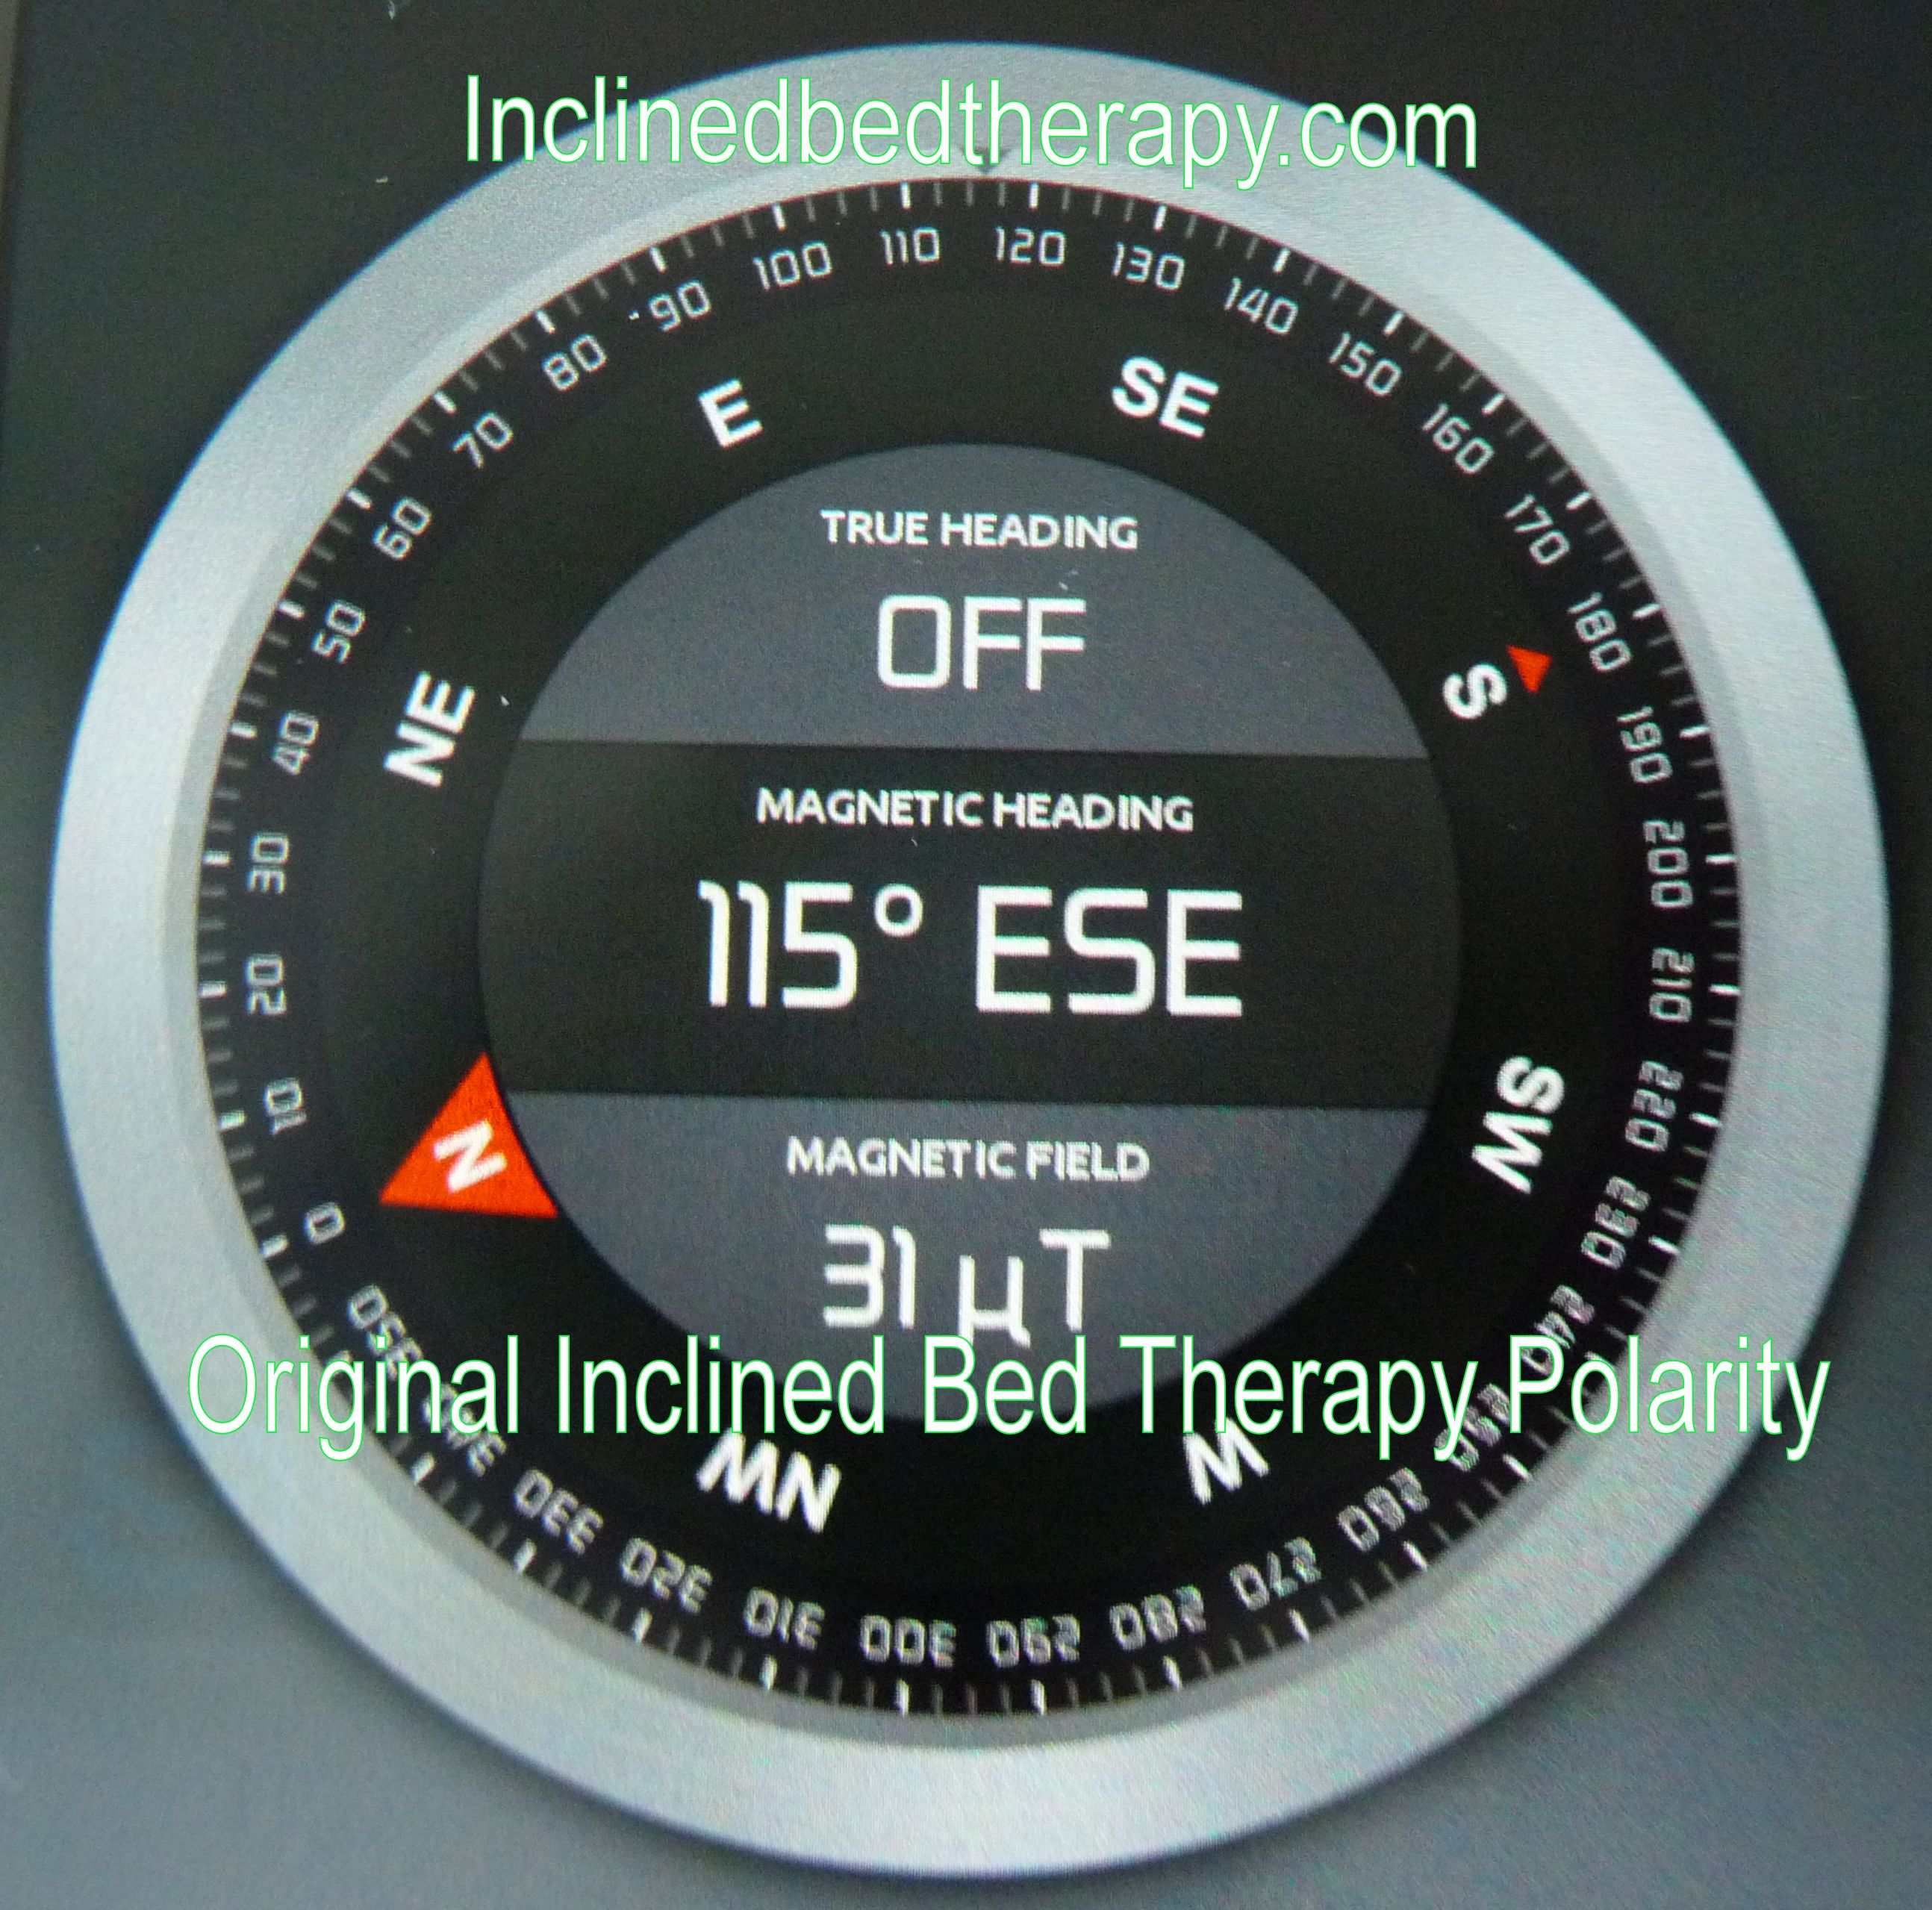 original_inclined_bed_therapy_magnetic_direction_.JPG - 906.43 kB